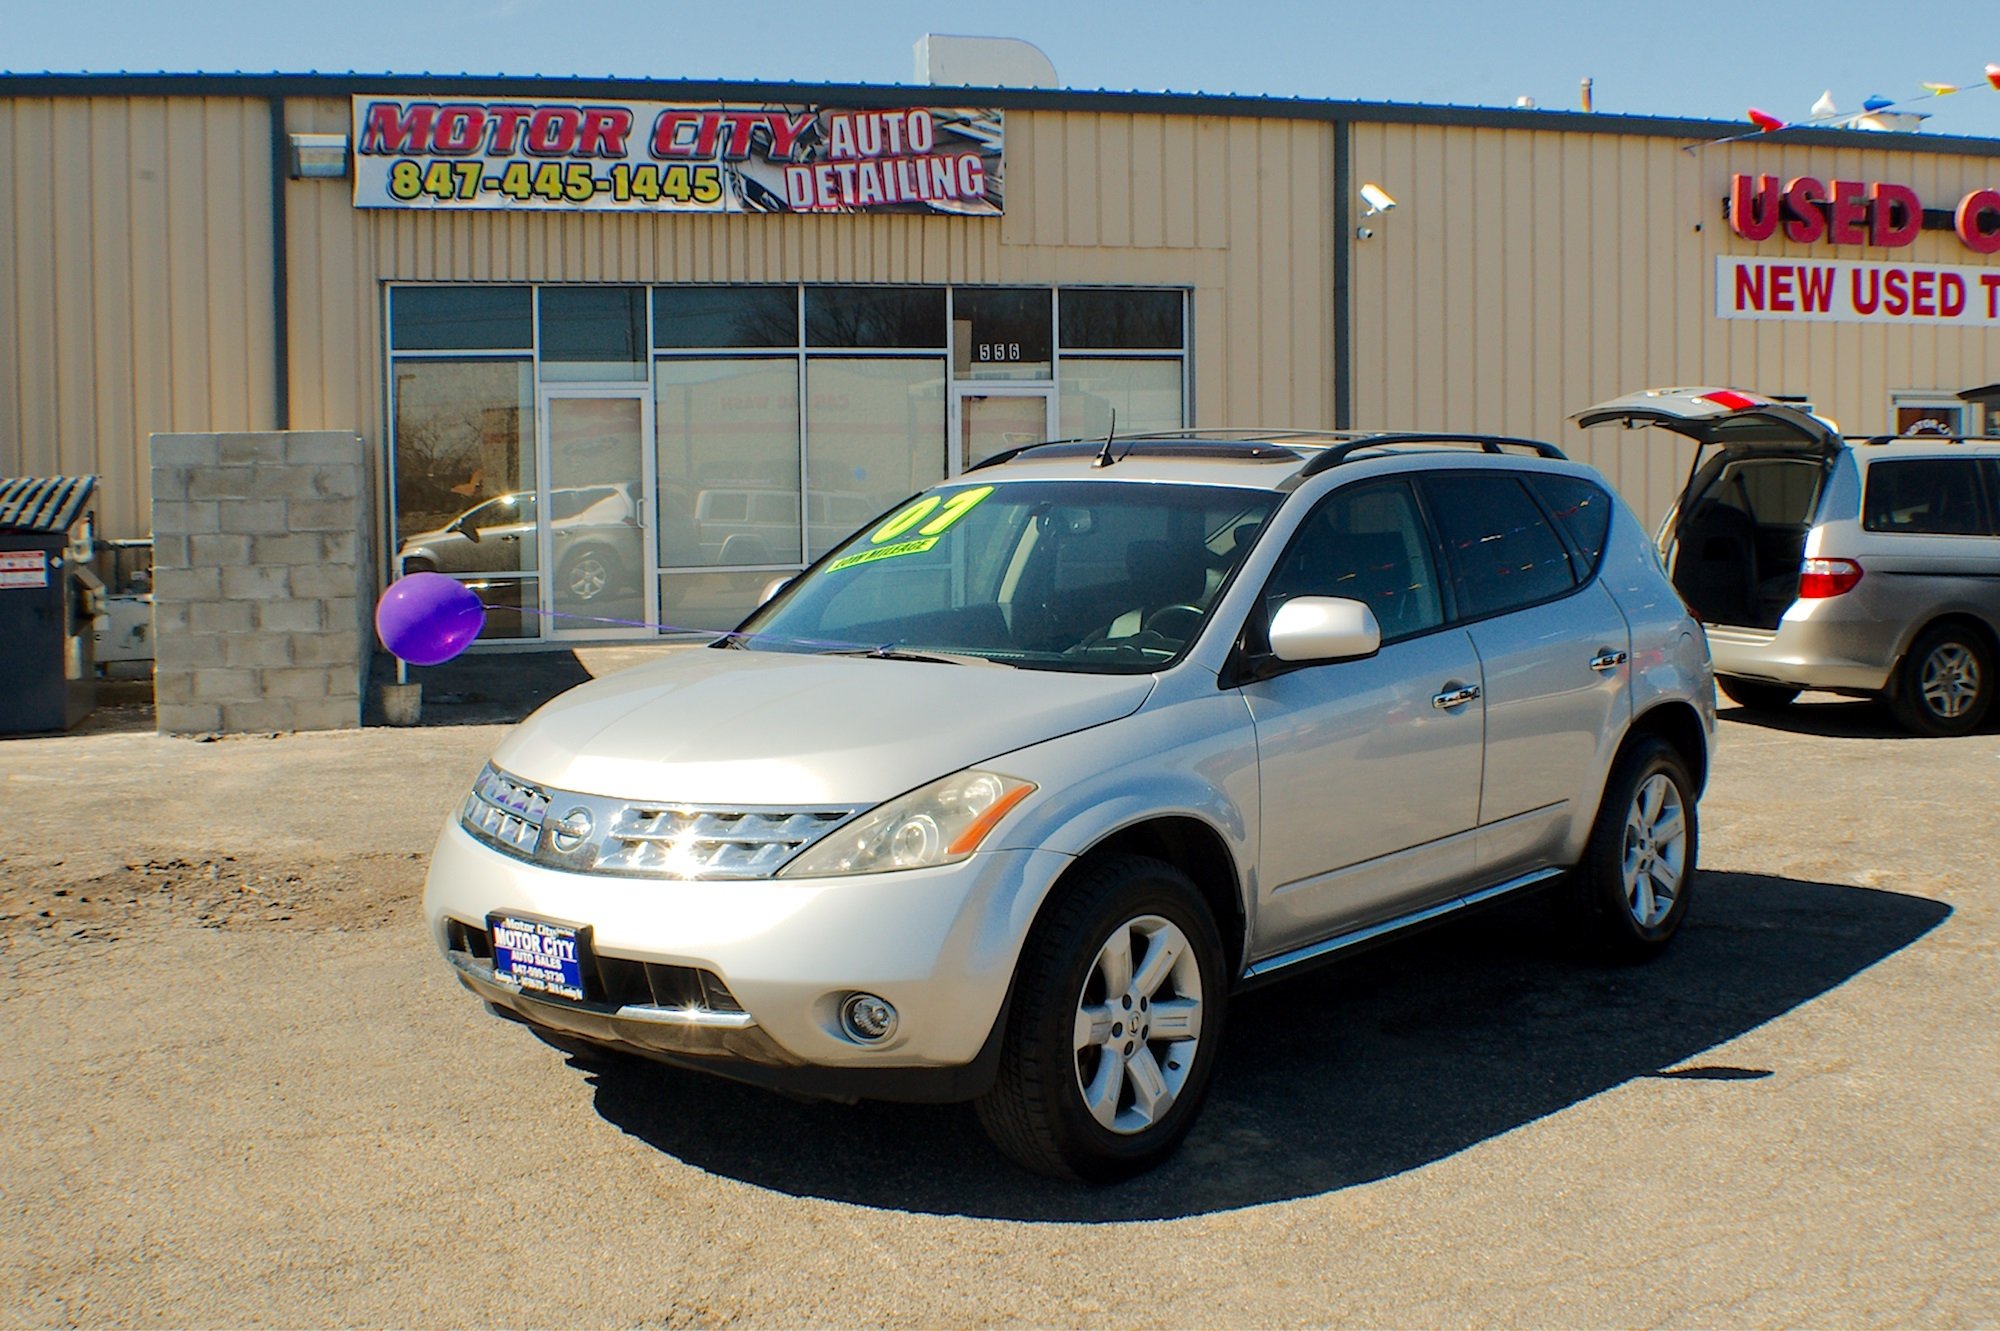 2007 Nissan Murano SL AWD Silver Used SUV Sale Antioch Zion Waukegan Lake County Illinois